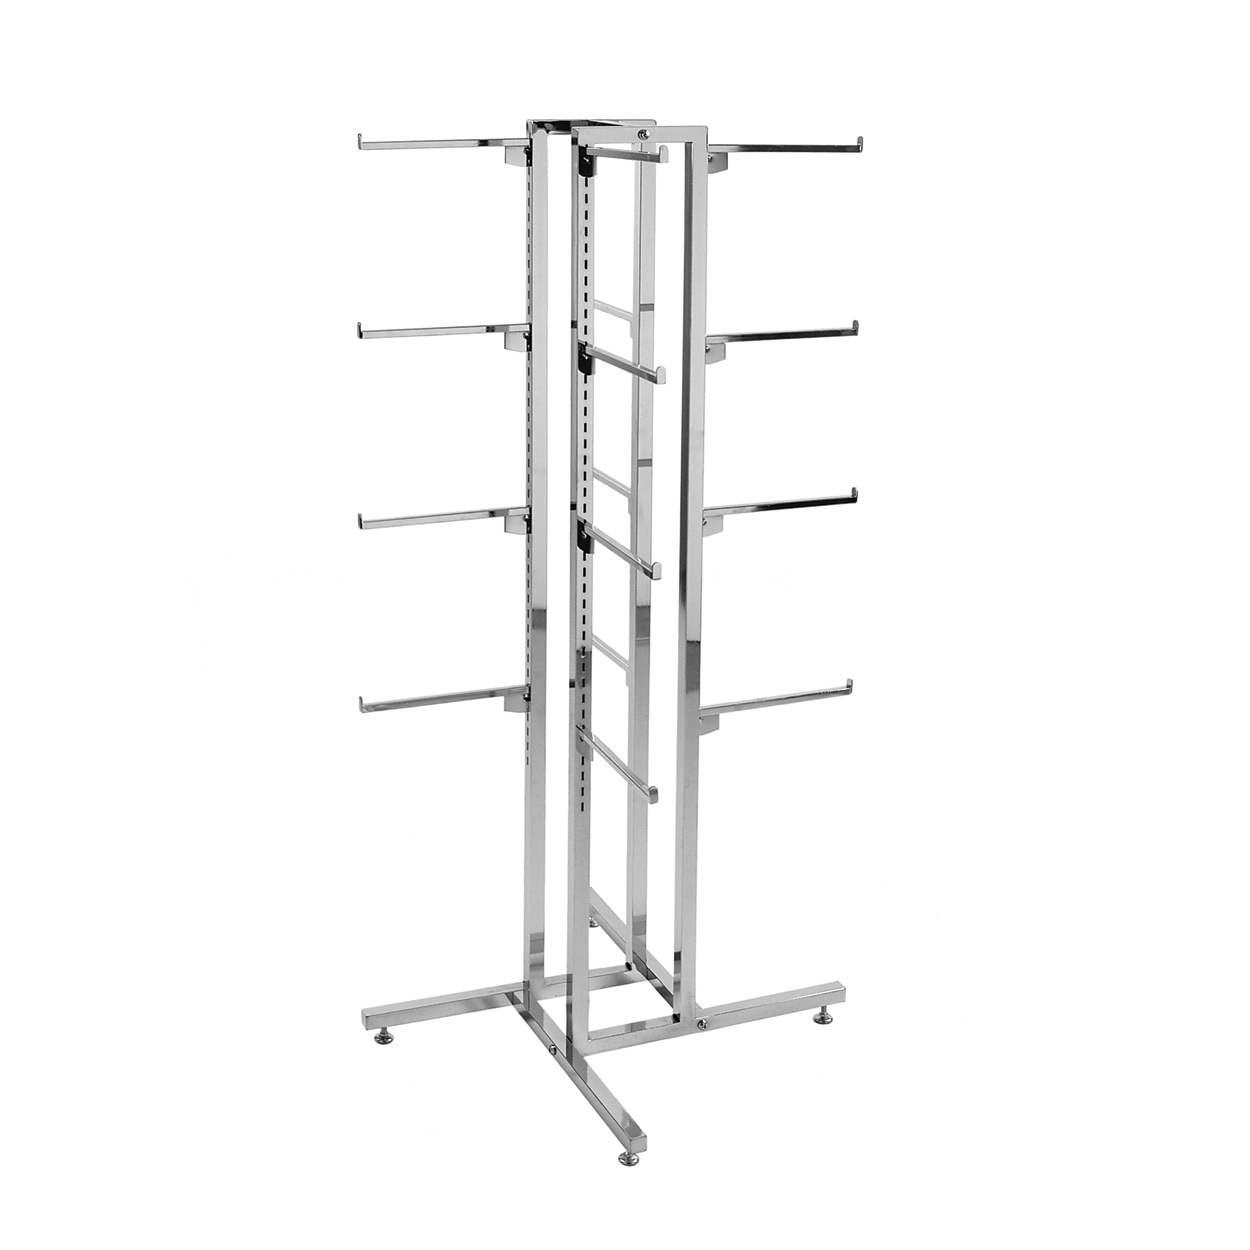 Lingerie or Swimwear Clothes Rack - Dimensions 1520 H x 730 x 730mm.